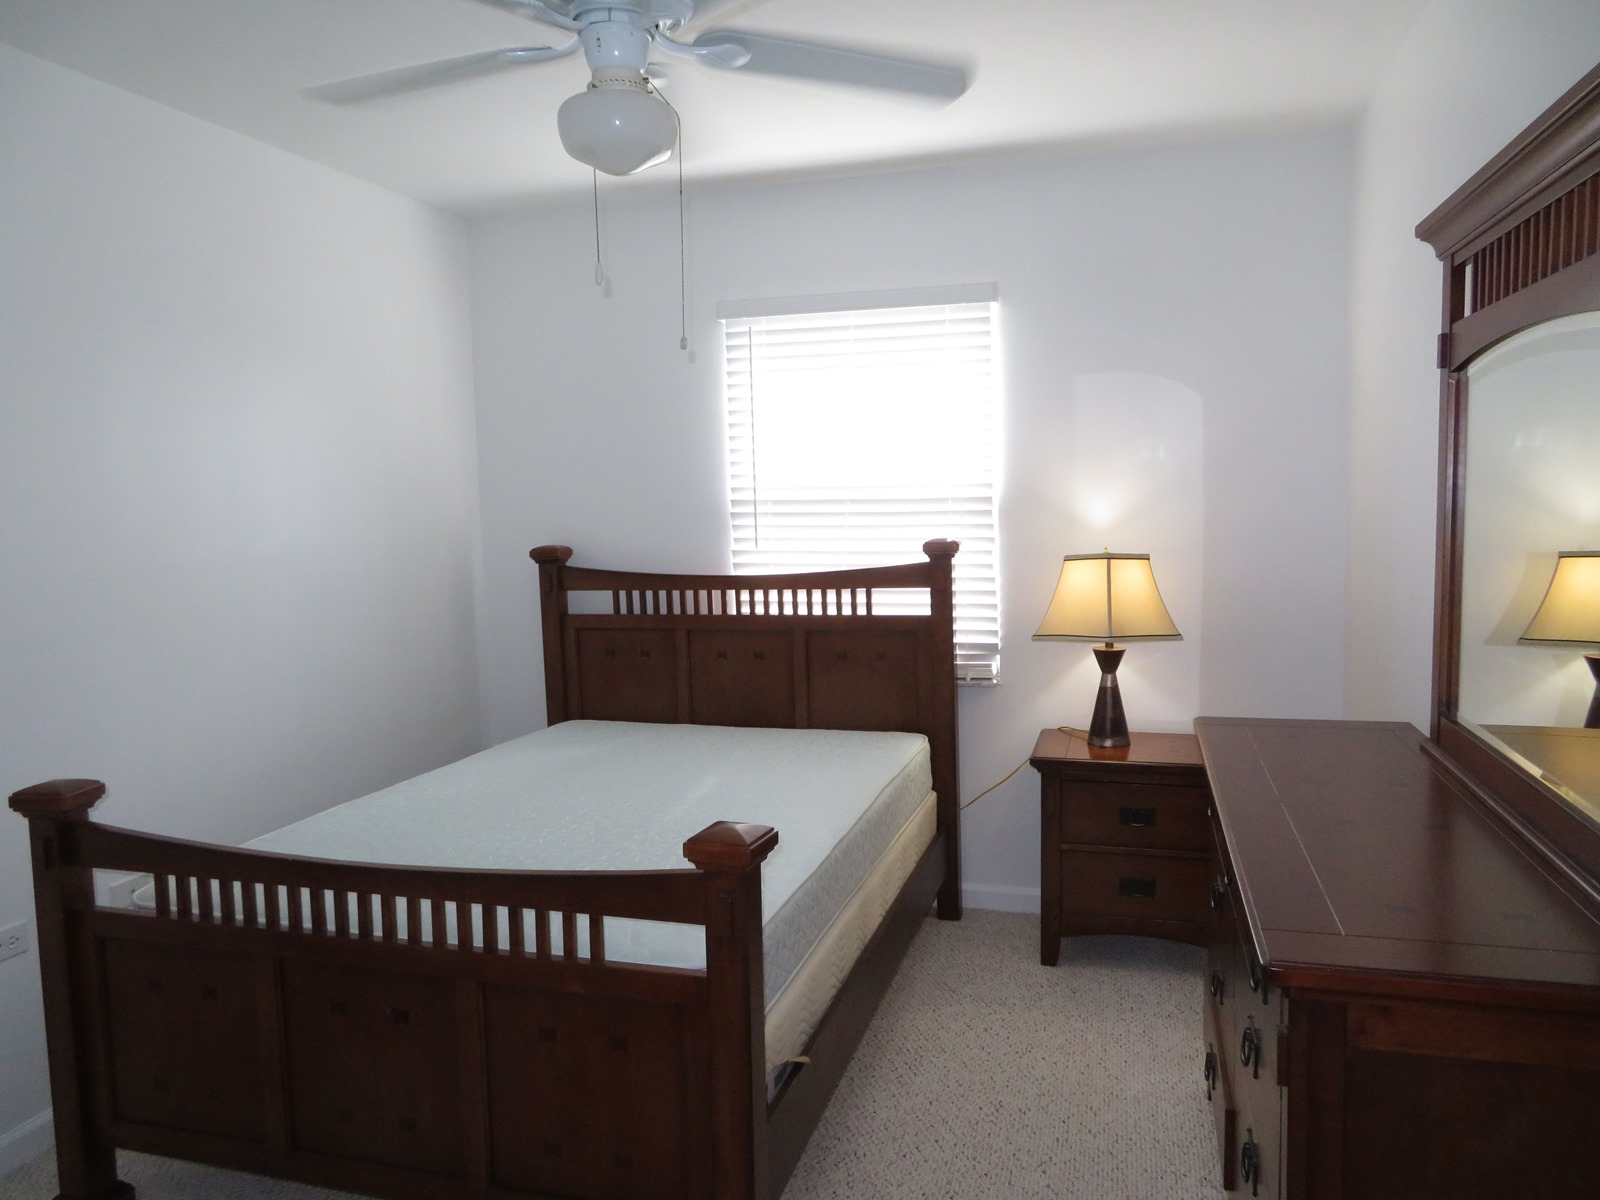 Additional photo for property listing at Spacious 3 bedroom condo with Garage near town and Cable Beach Nautica, Nassau And Paradise Island, Bahamas